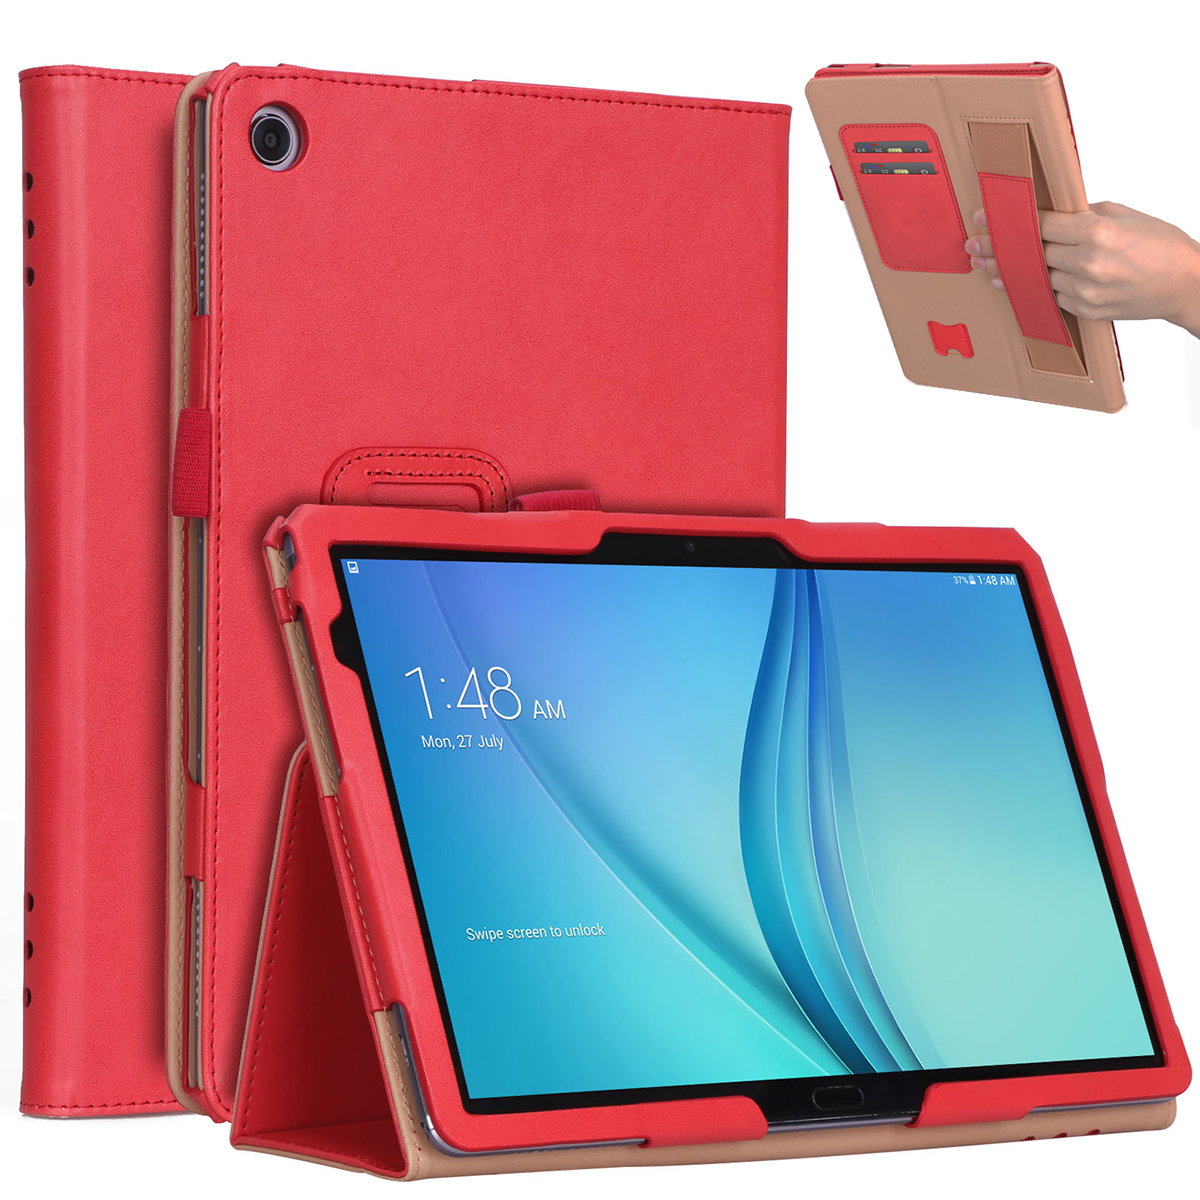 For HUAWEI M5 lite 10.1 Retro Pattern PU Leather Protective Case with Hand Support Pen Slot Sleep Function red_HUAWEI M5 lite 10.1